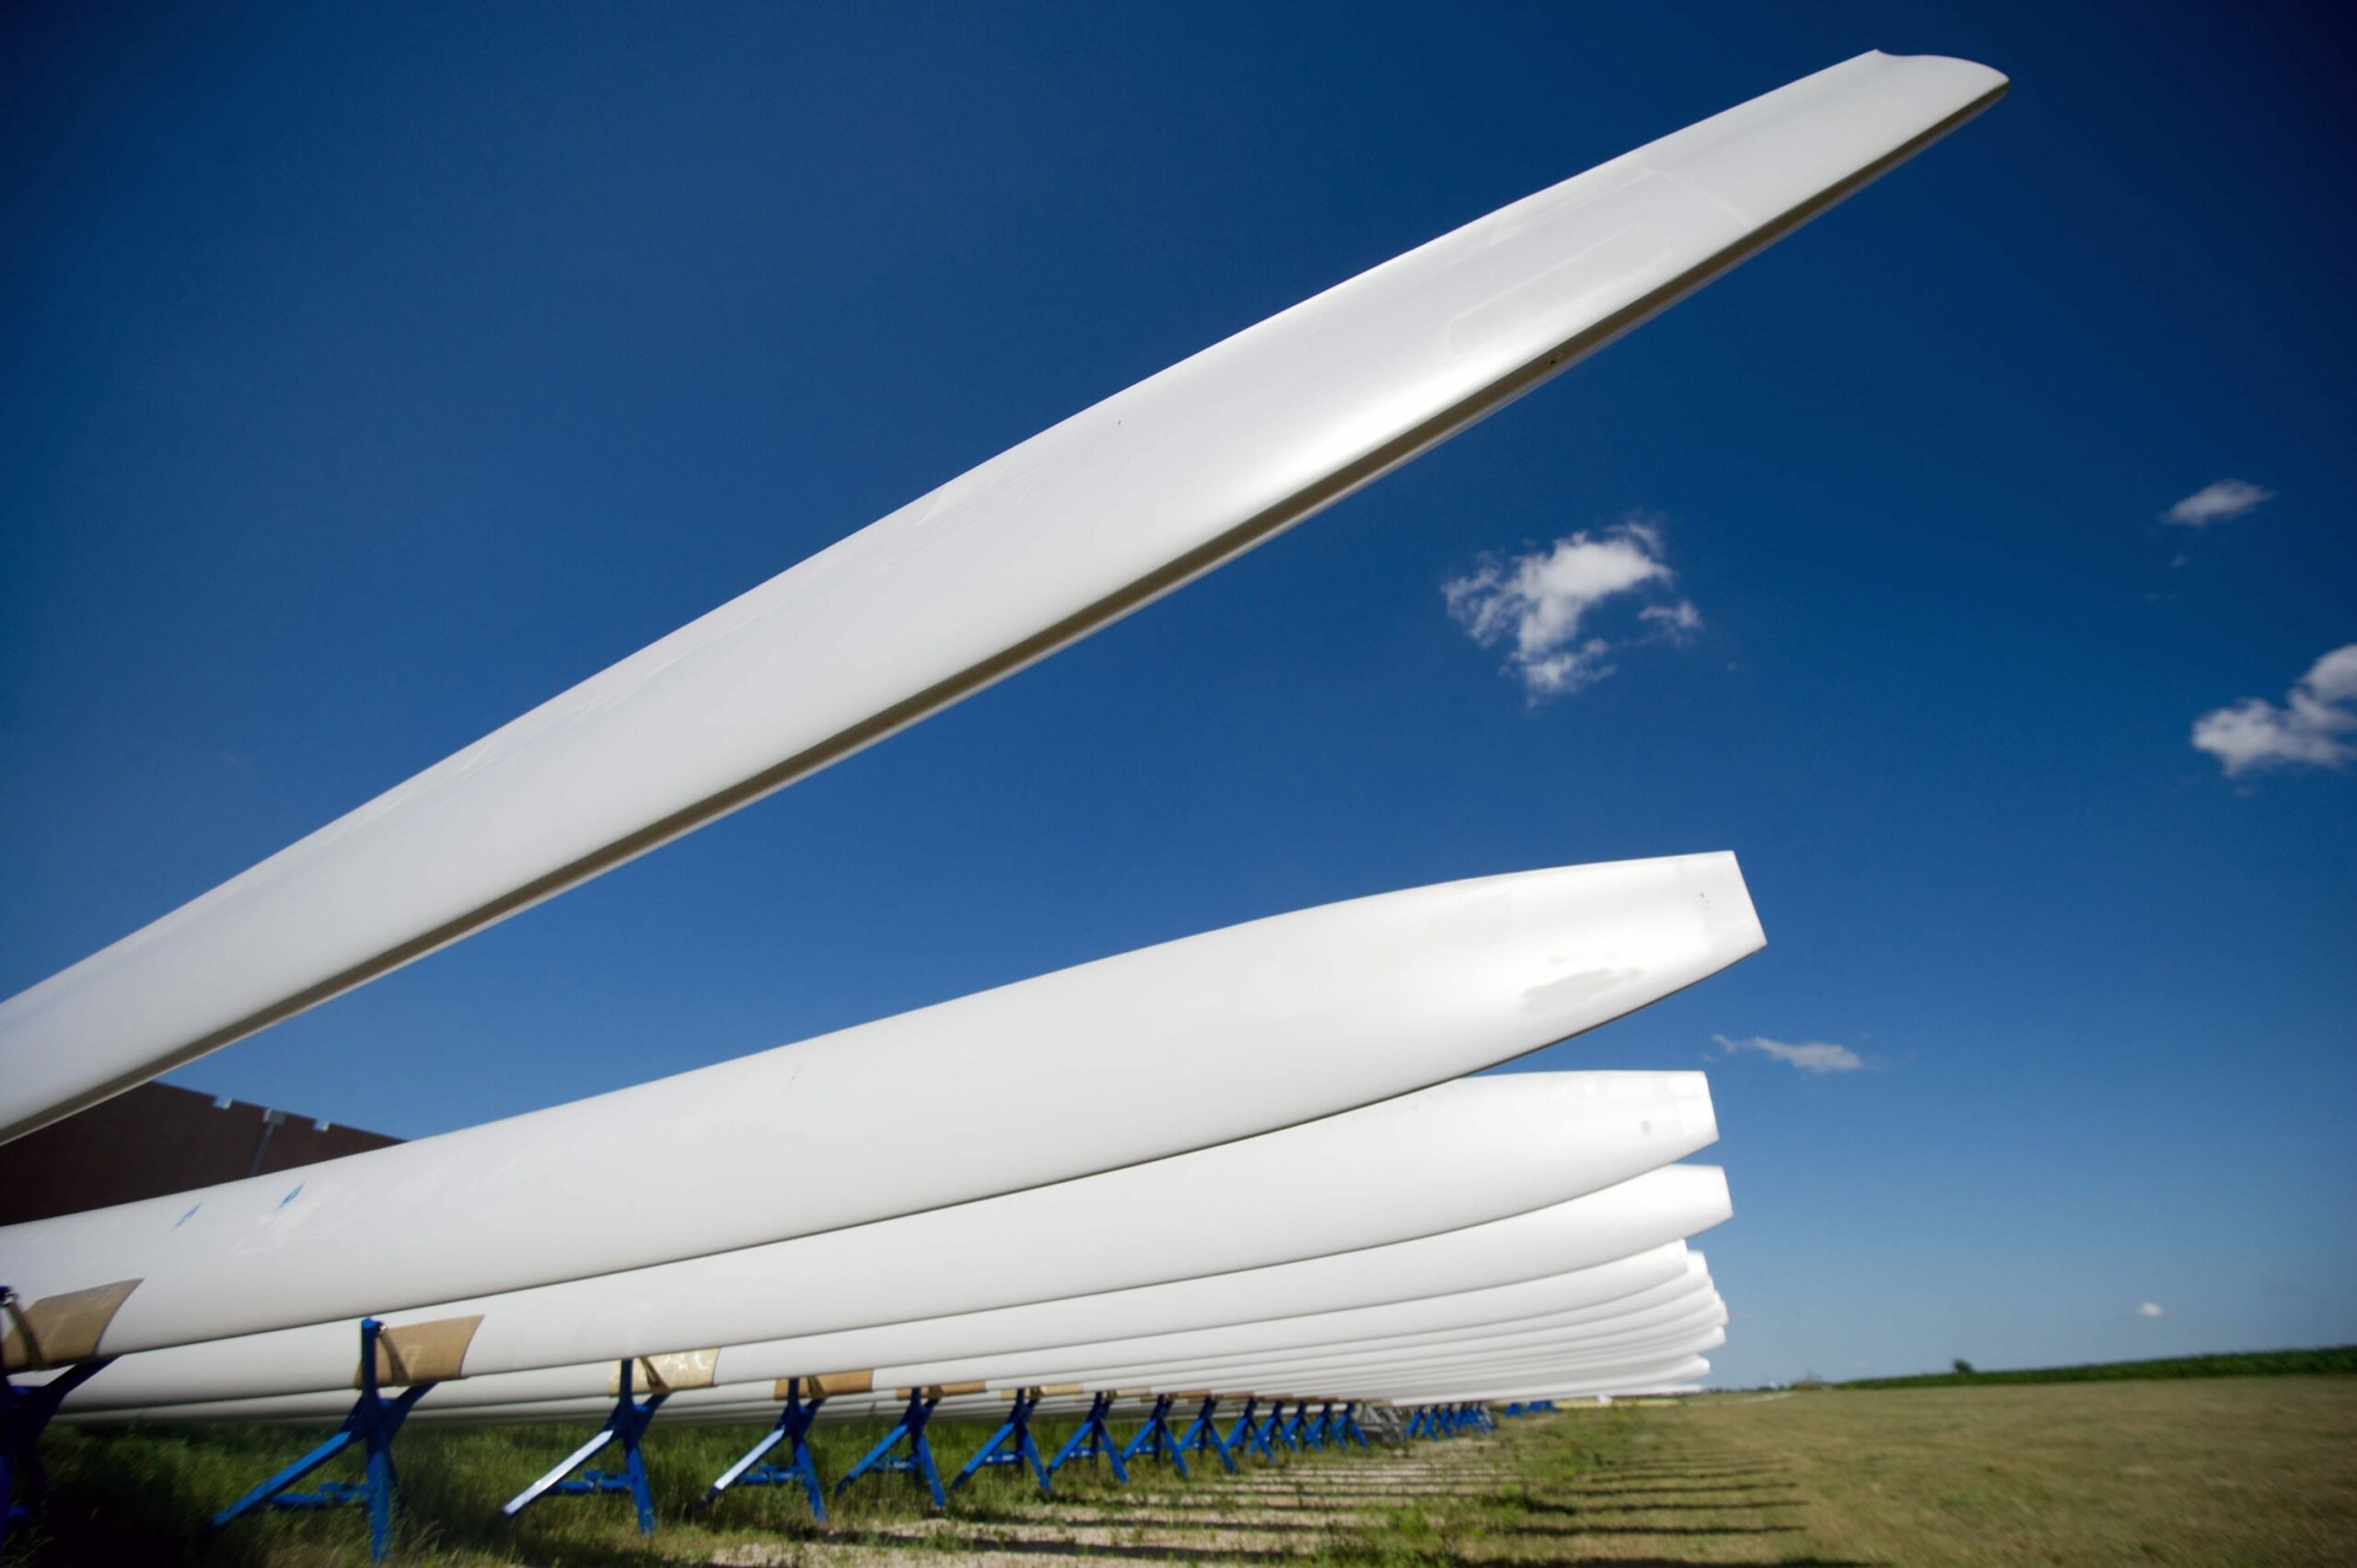 Cement agency works with GE's renewables unit on wind turbine recycling